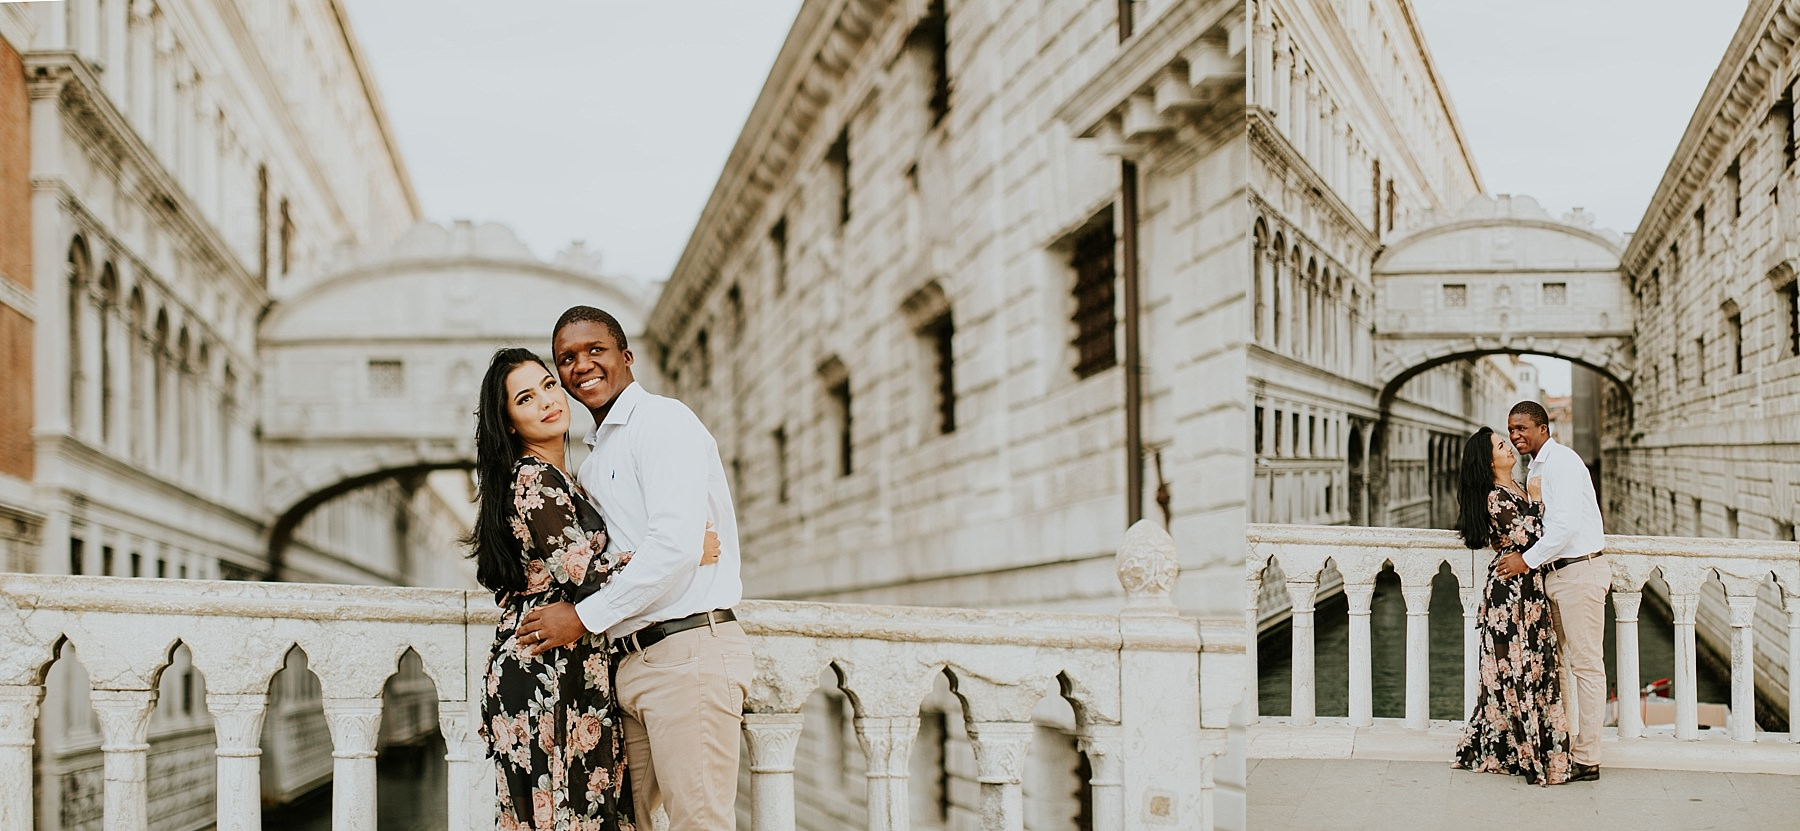 bridge of sighs Honeymoon photo session in Venice